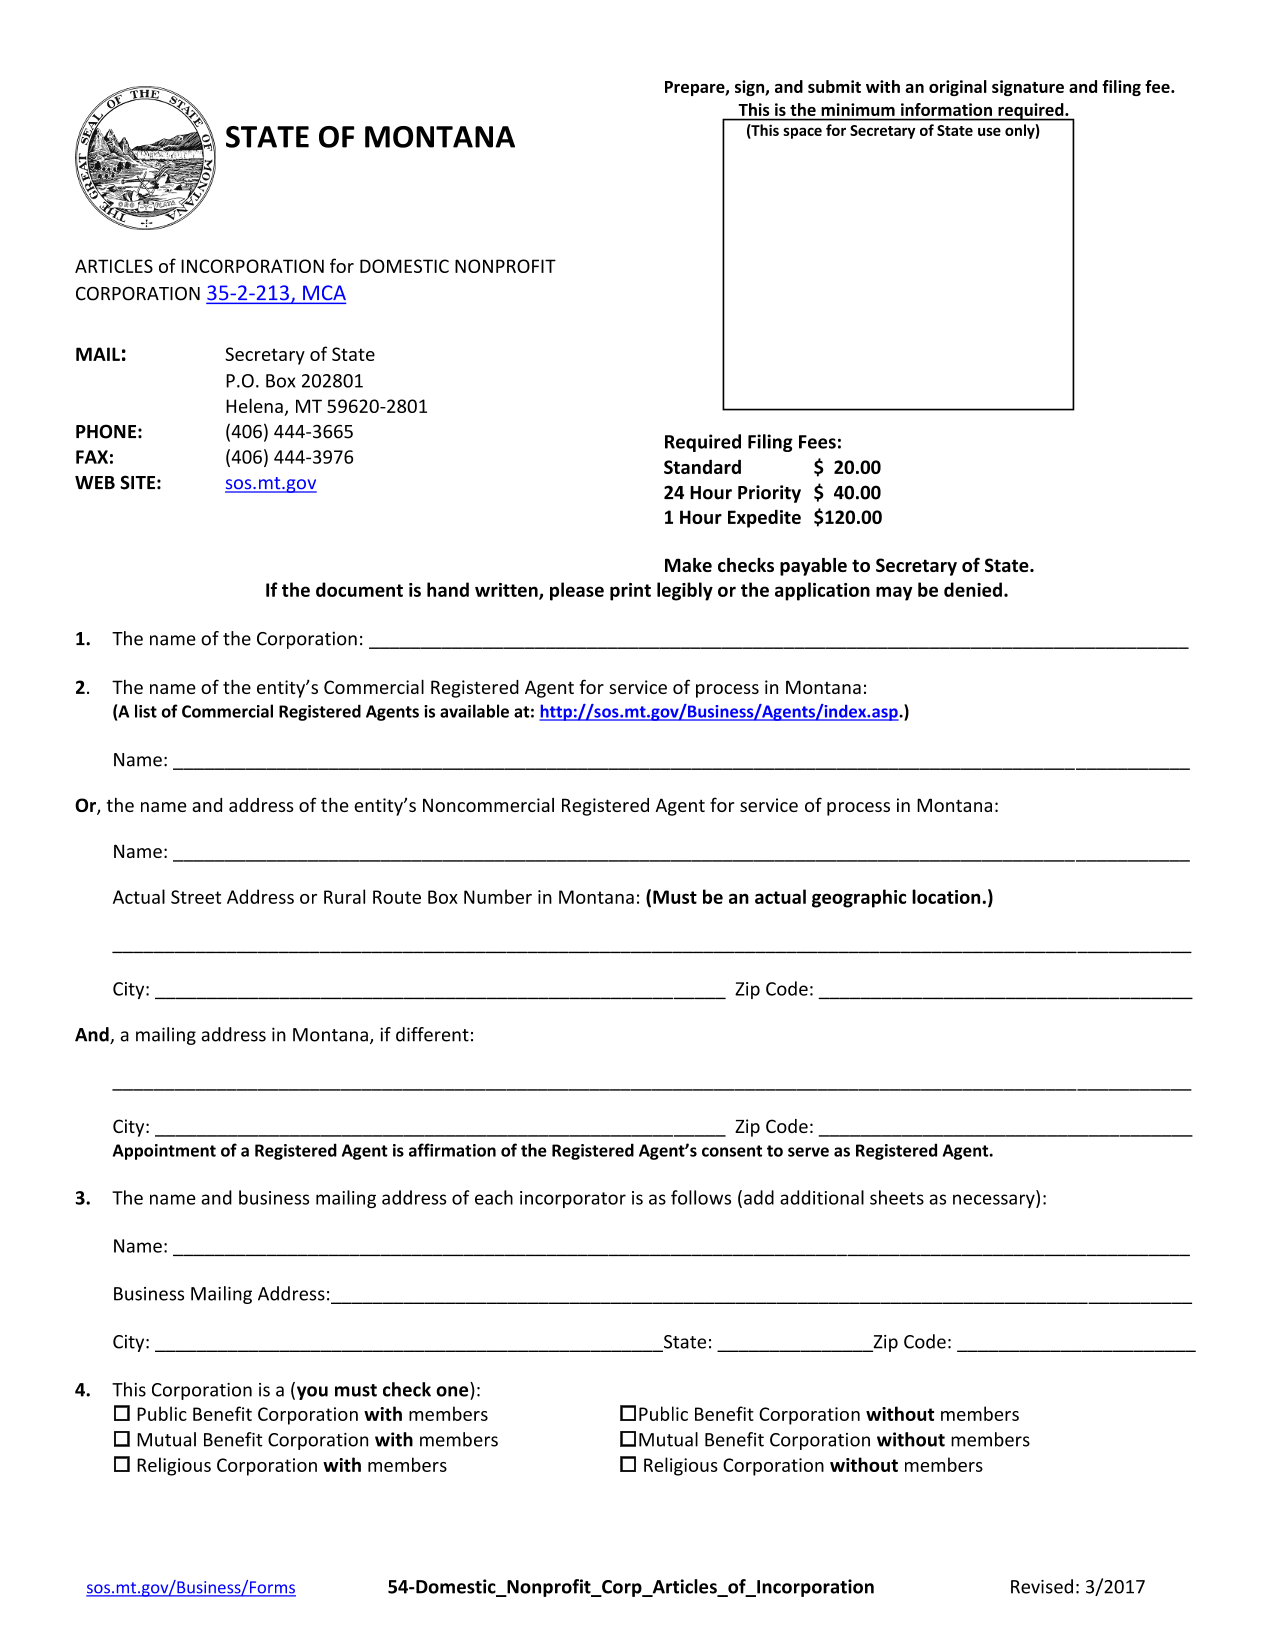 Montana Articles of Incorporation for Domestic Nonprofit Corporation